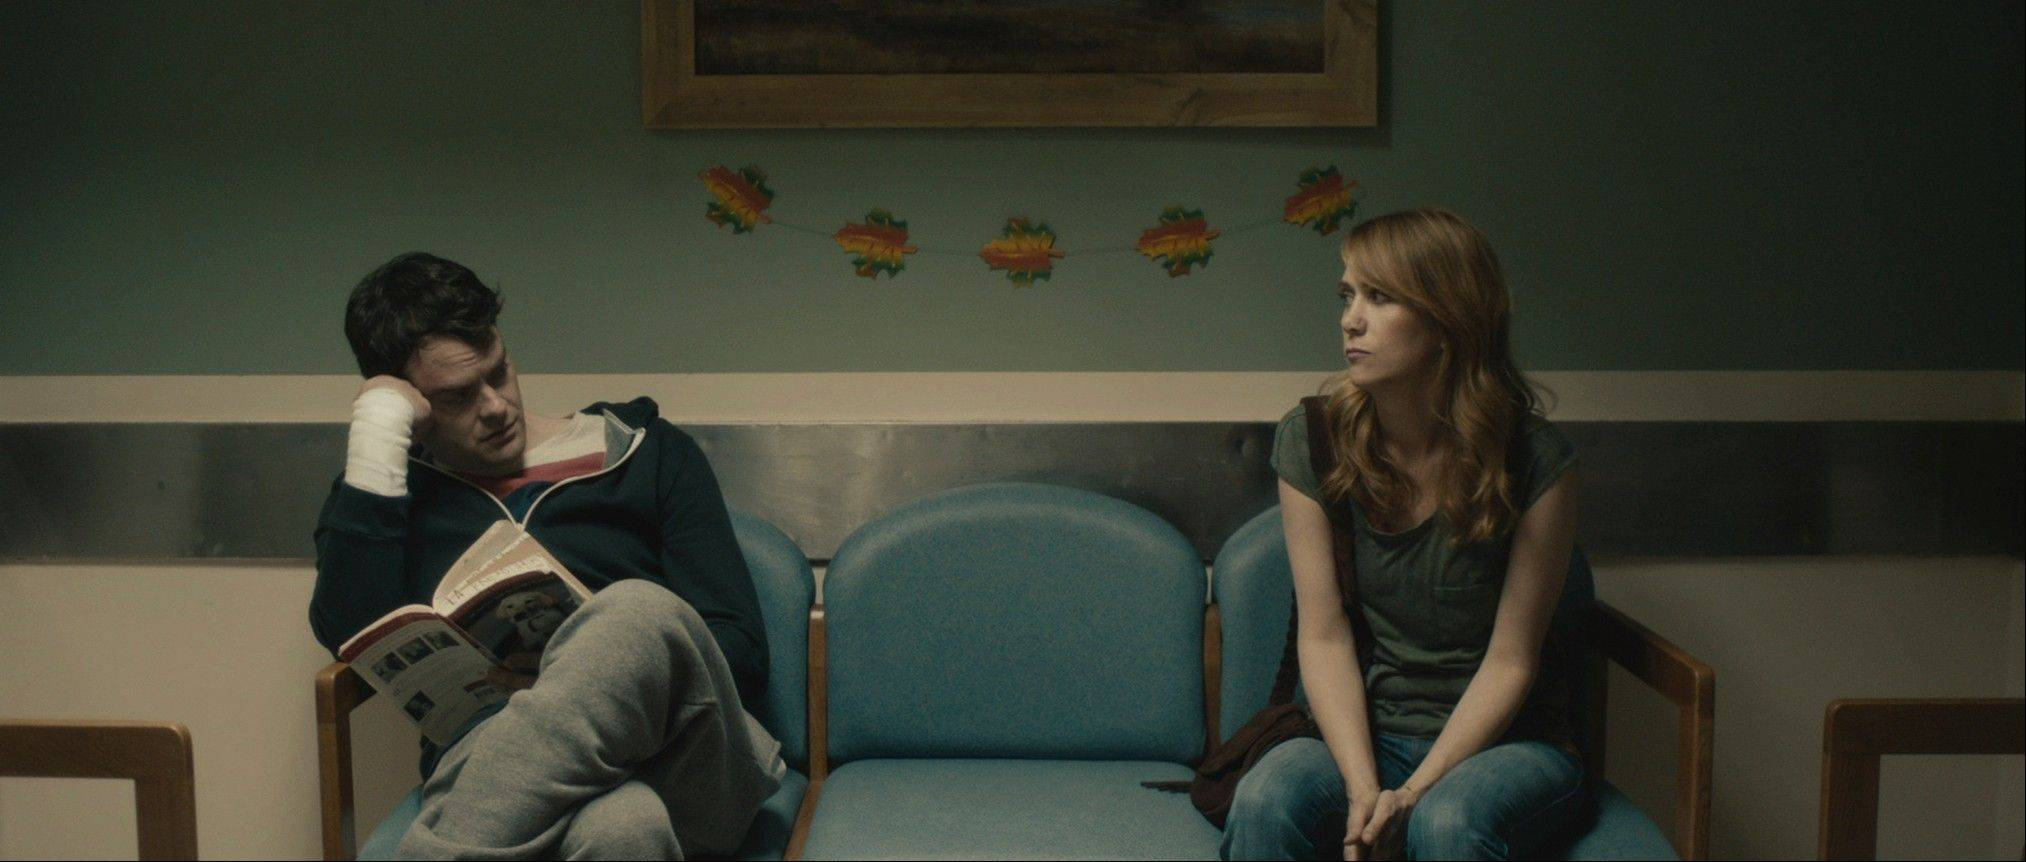 "Bill Hader, left, and Kristen Wiig, star as estranged twins in ""The Skeleton Twins,"" directed by Craig Johnson."